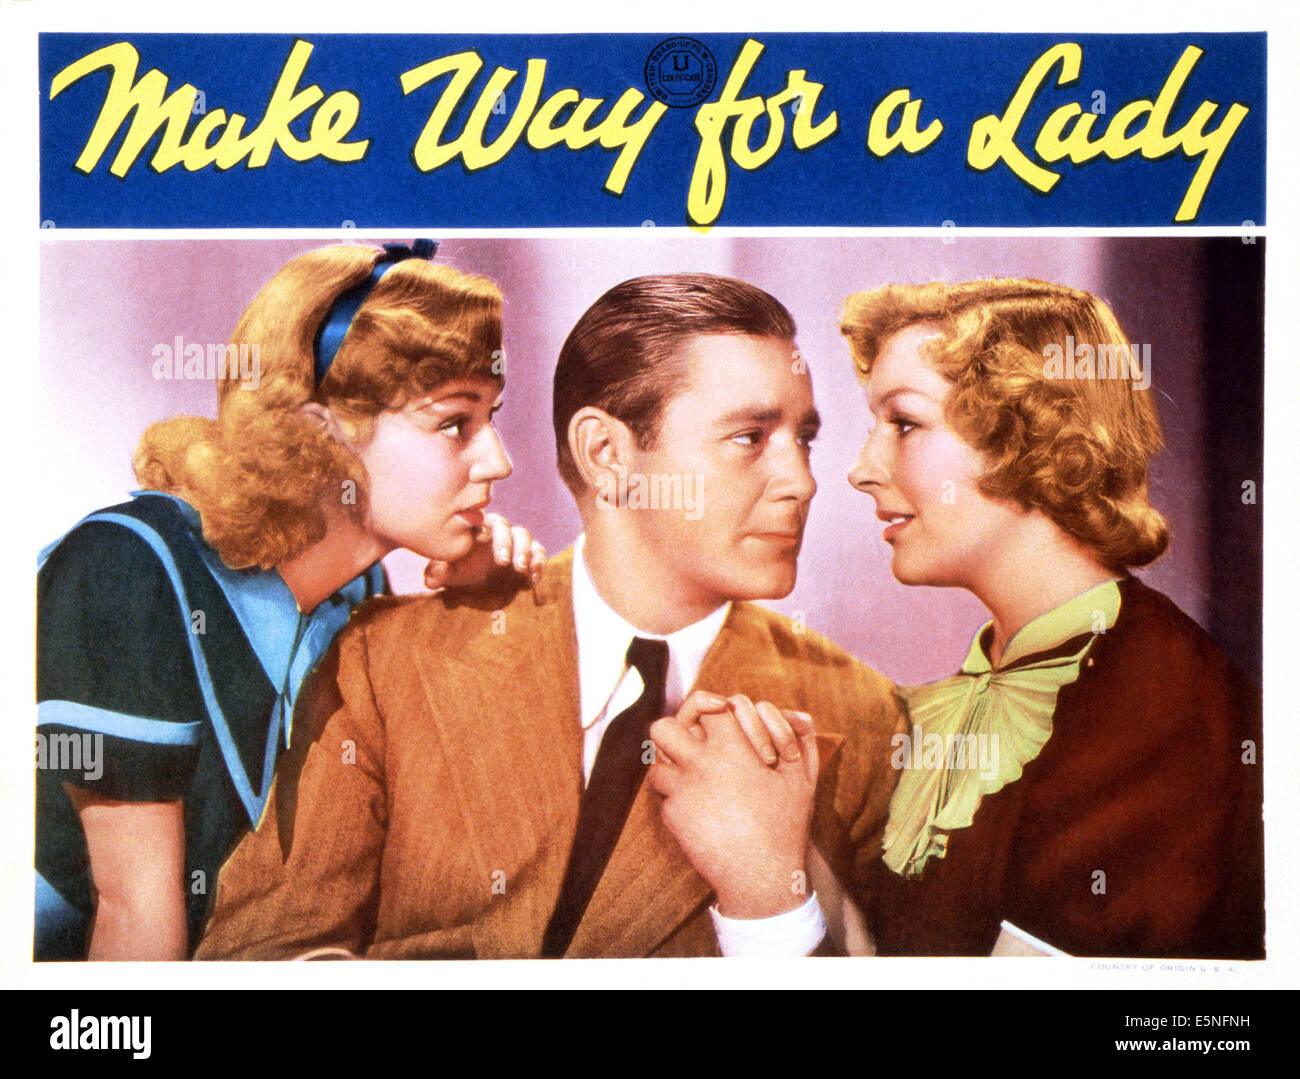 MAKE WAY FOR A LADY, from left: Anne Shirley, Herbert Marshall, Gertrude Michael, 1936 - Stock Image